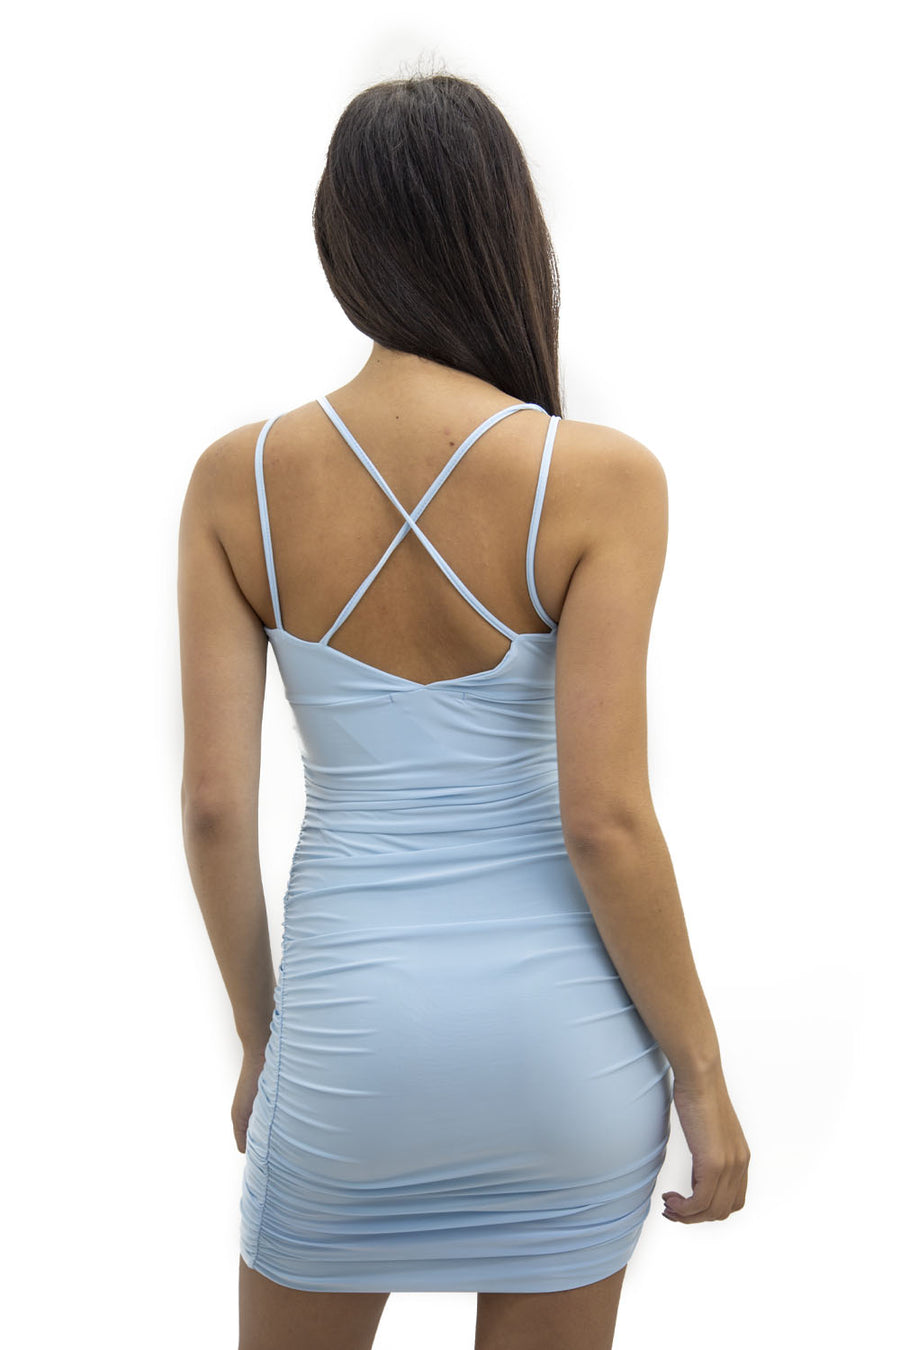 Blue V Neck String Back Mini Dress - Blush